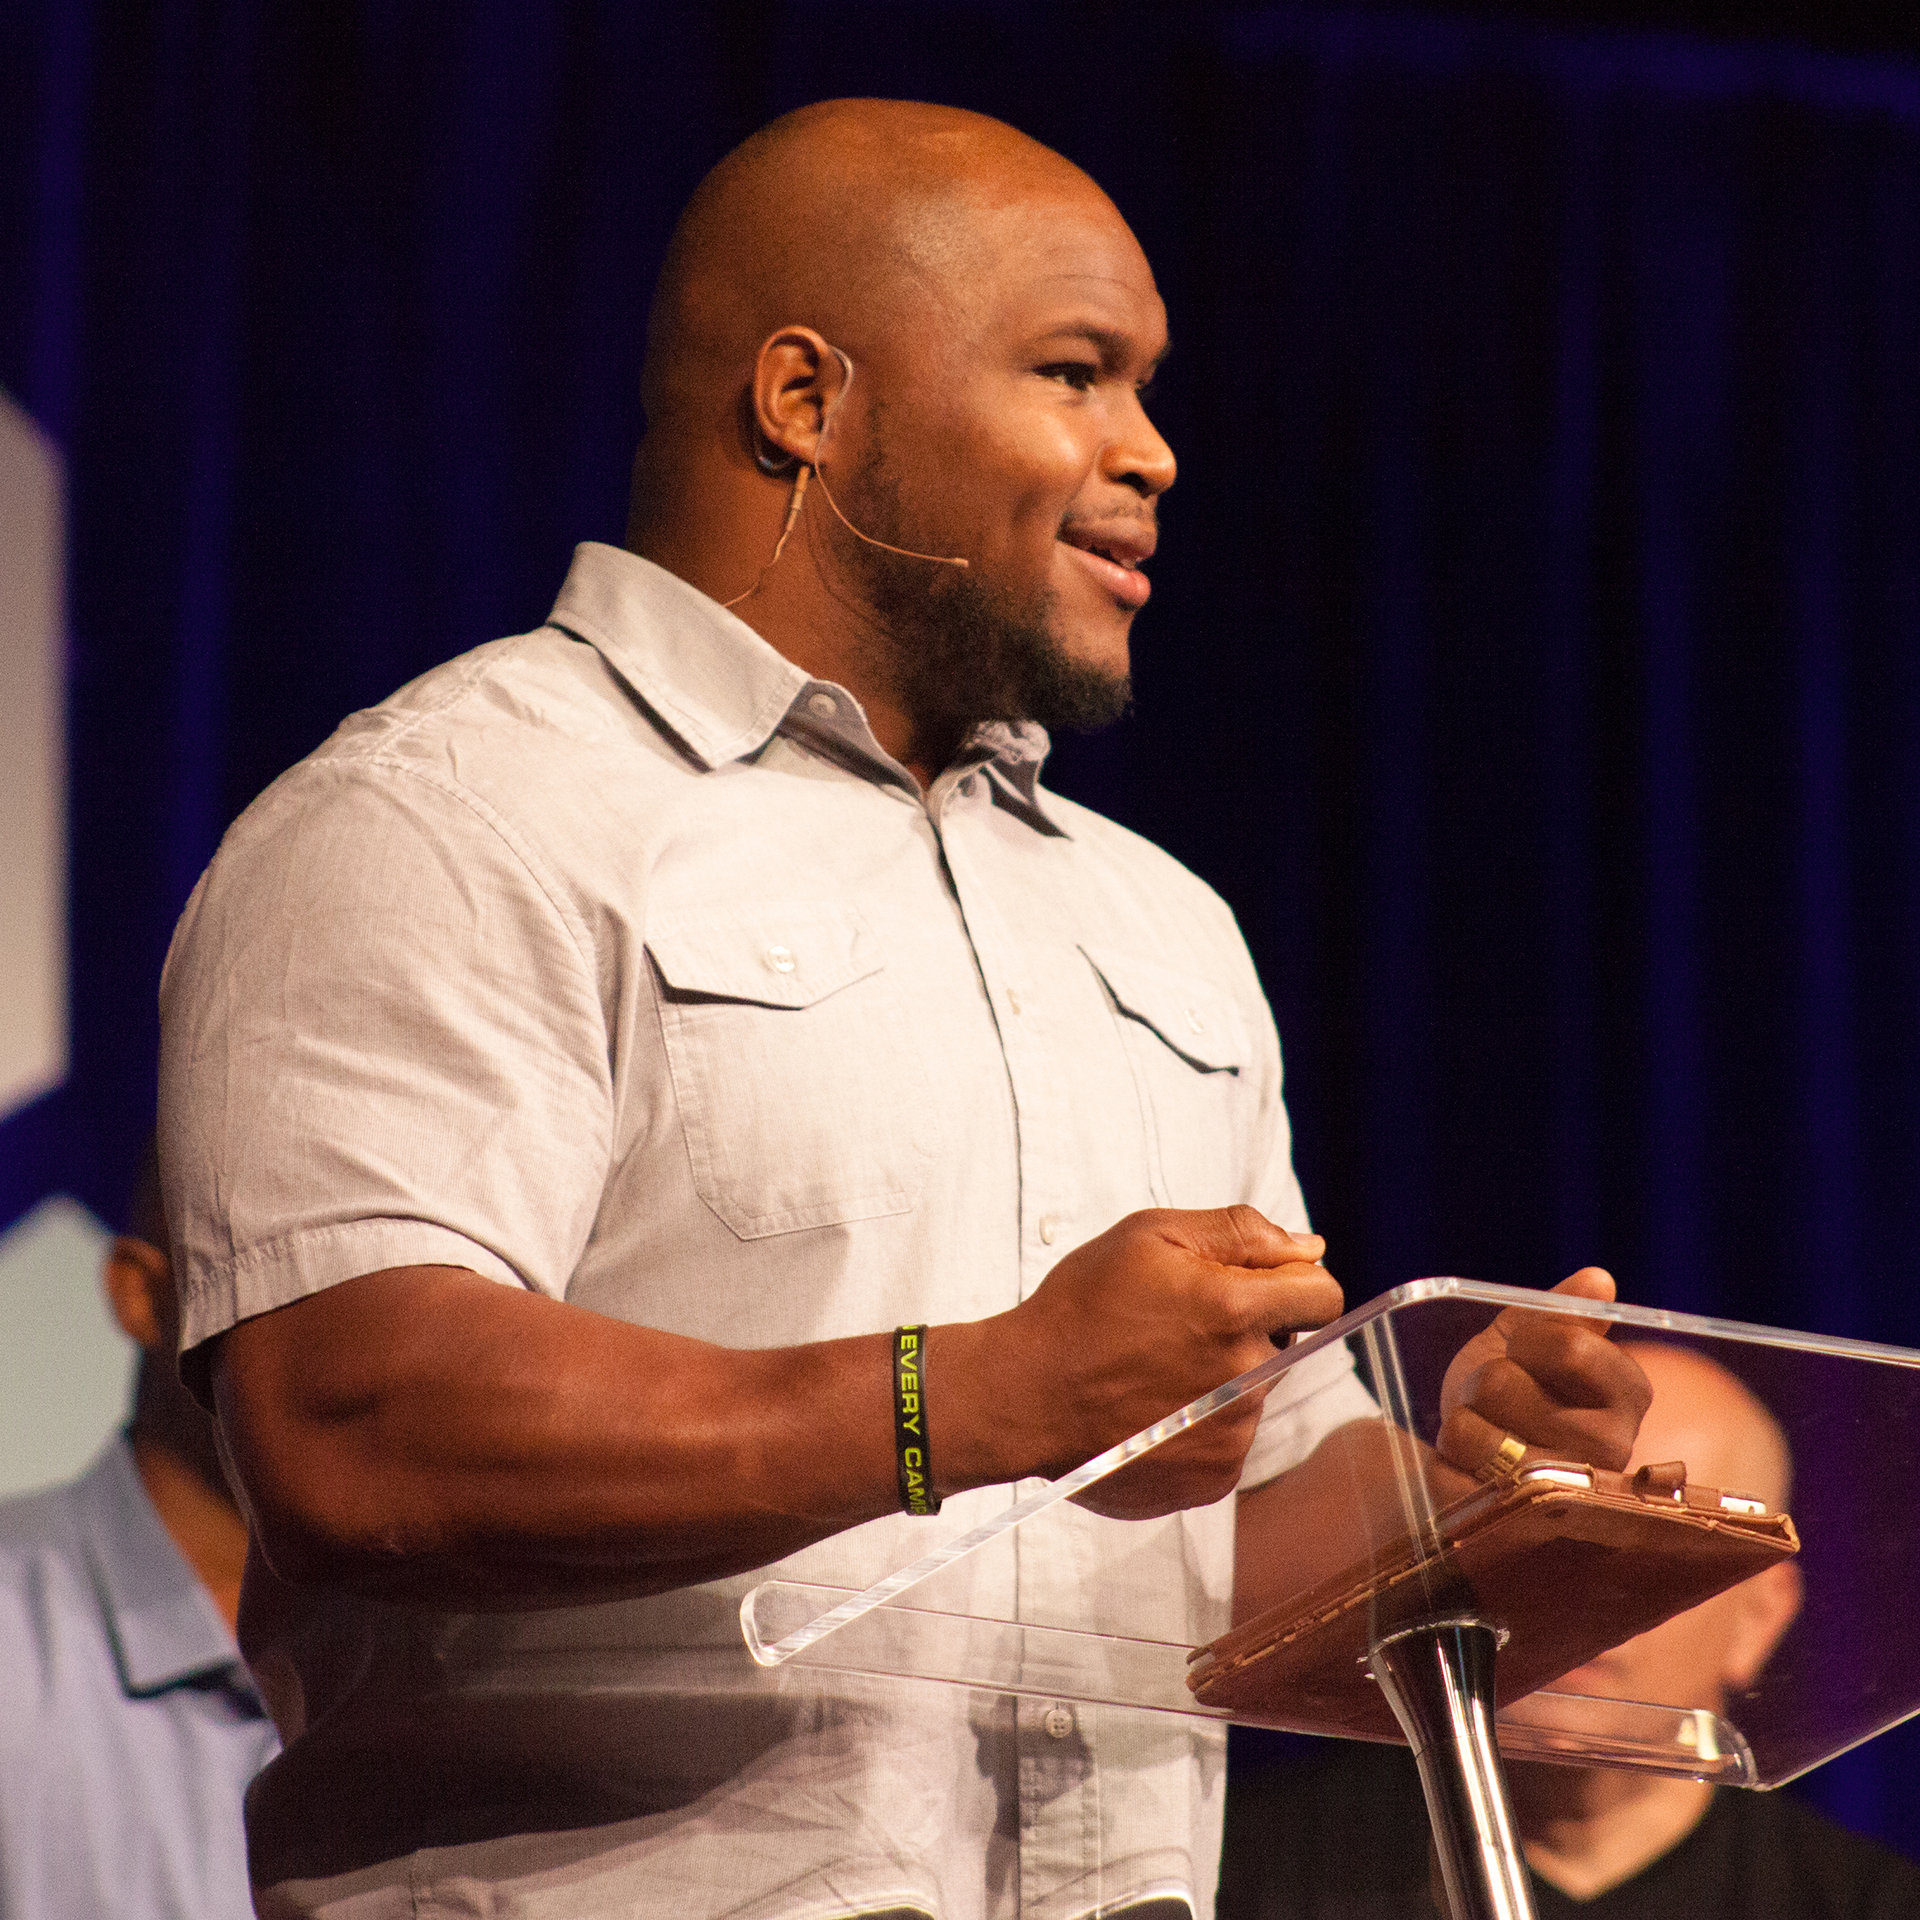 Chris johnson_.jpg